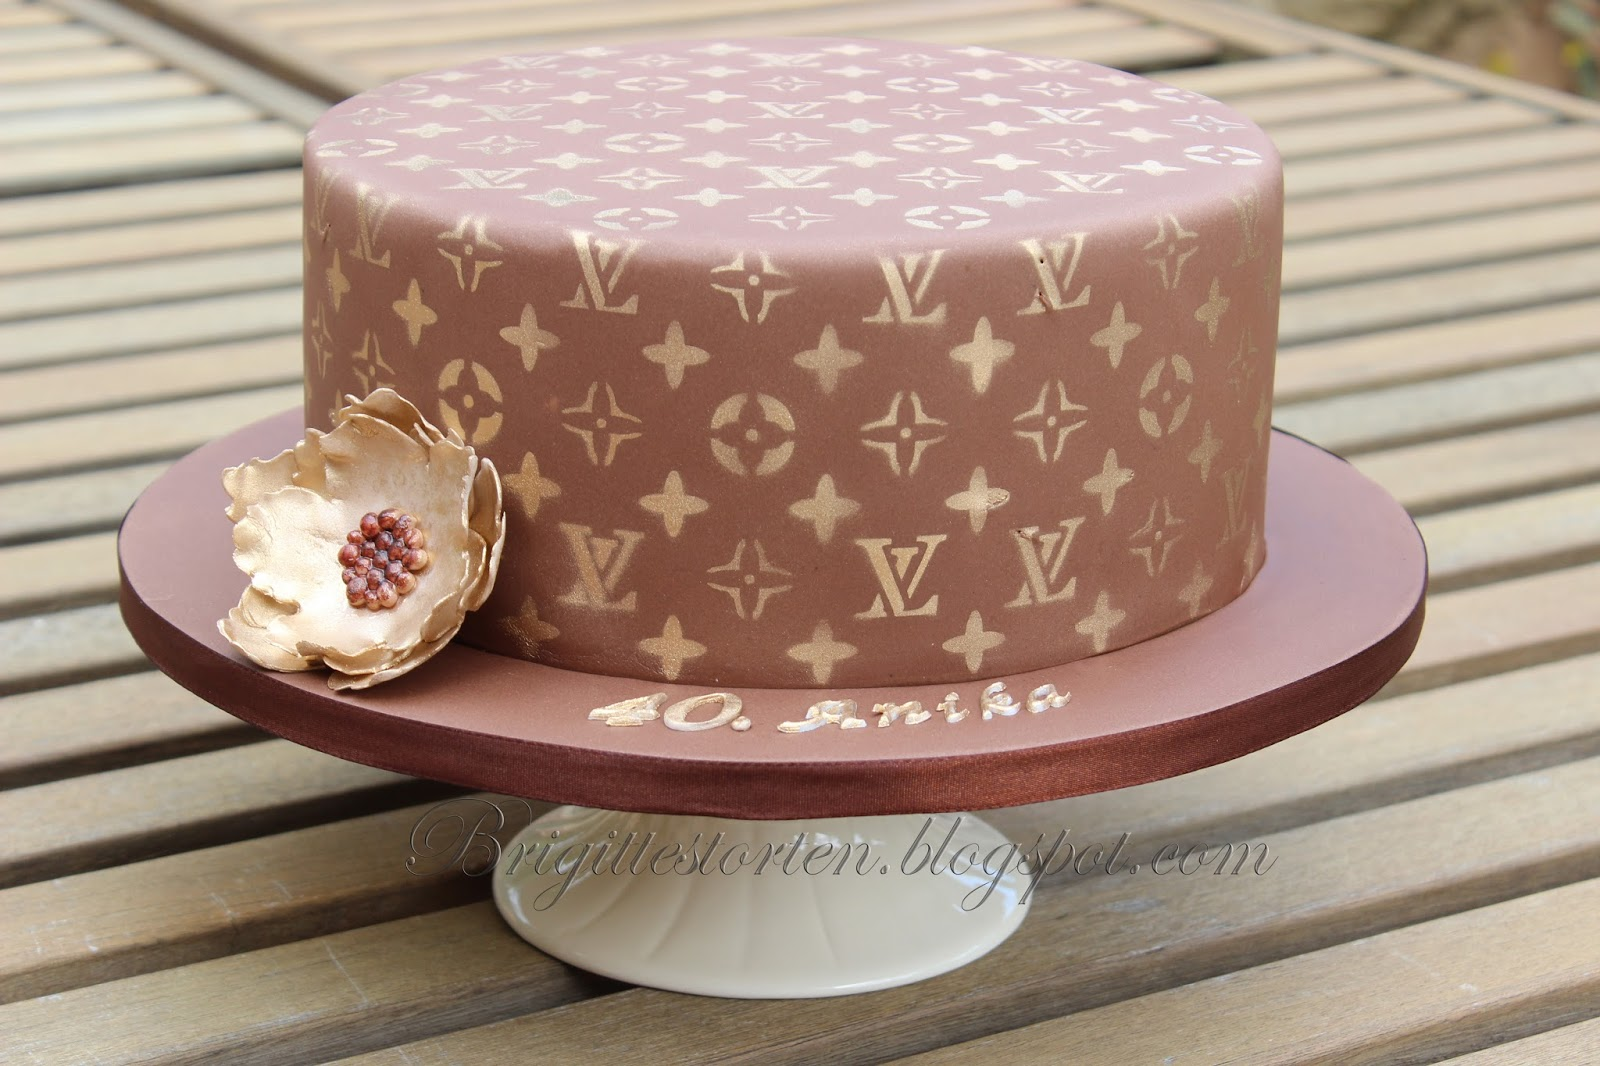 Kuchen Deko Gold Brigittes Tortendesign Louis Vuitton Torte In Braun Gold